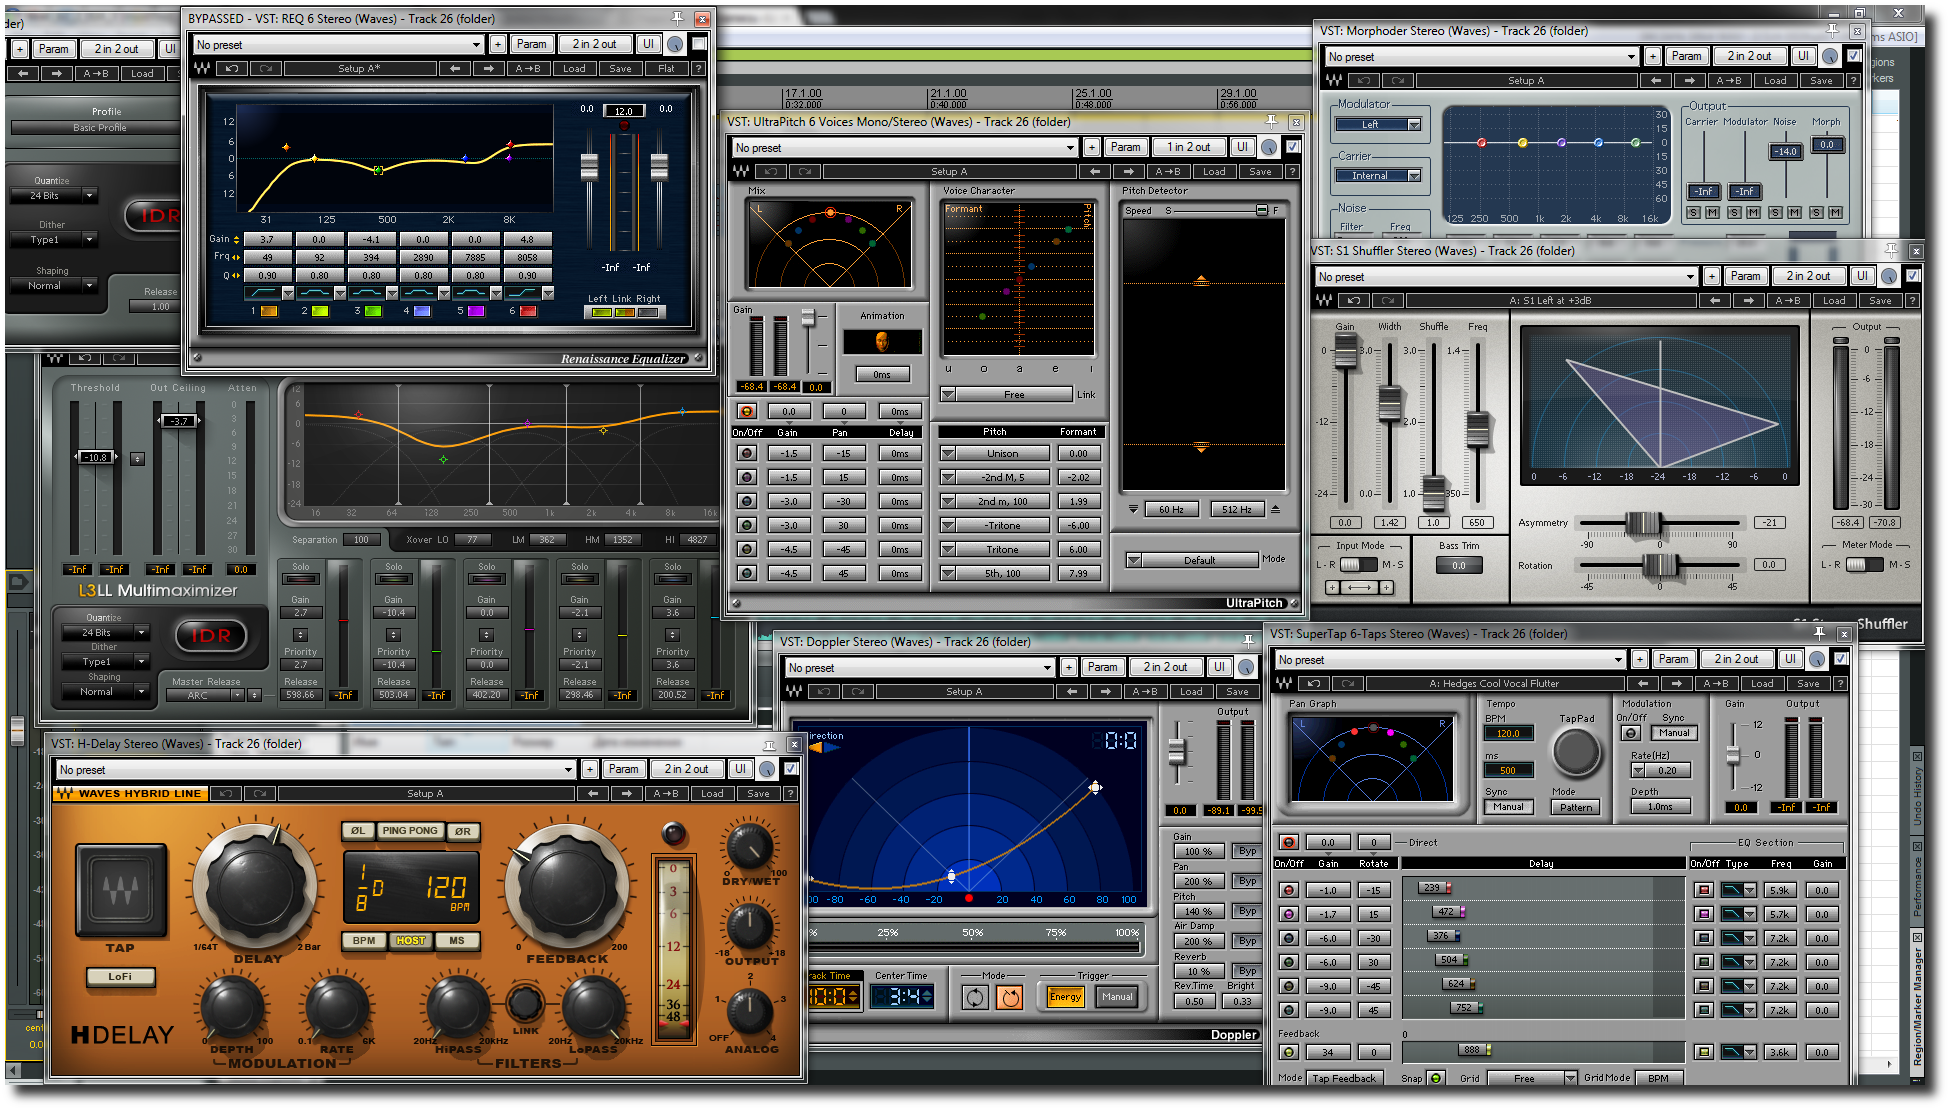 Waves Plugins graphic -Choosing A Digital Audio Workstation (DAW)